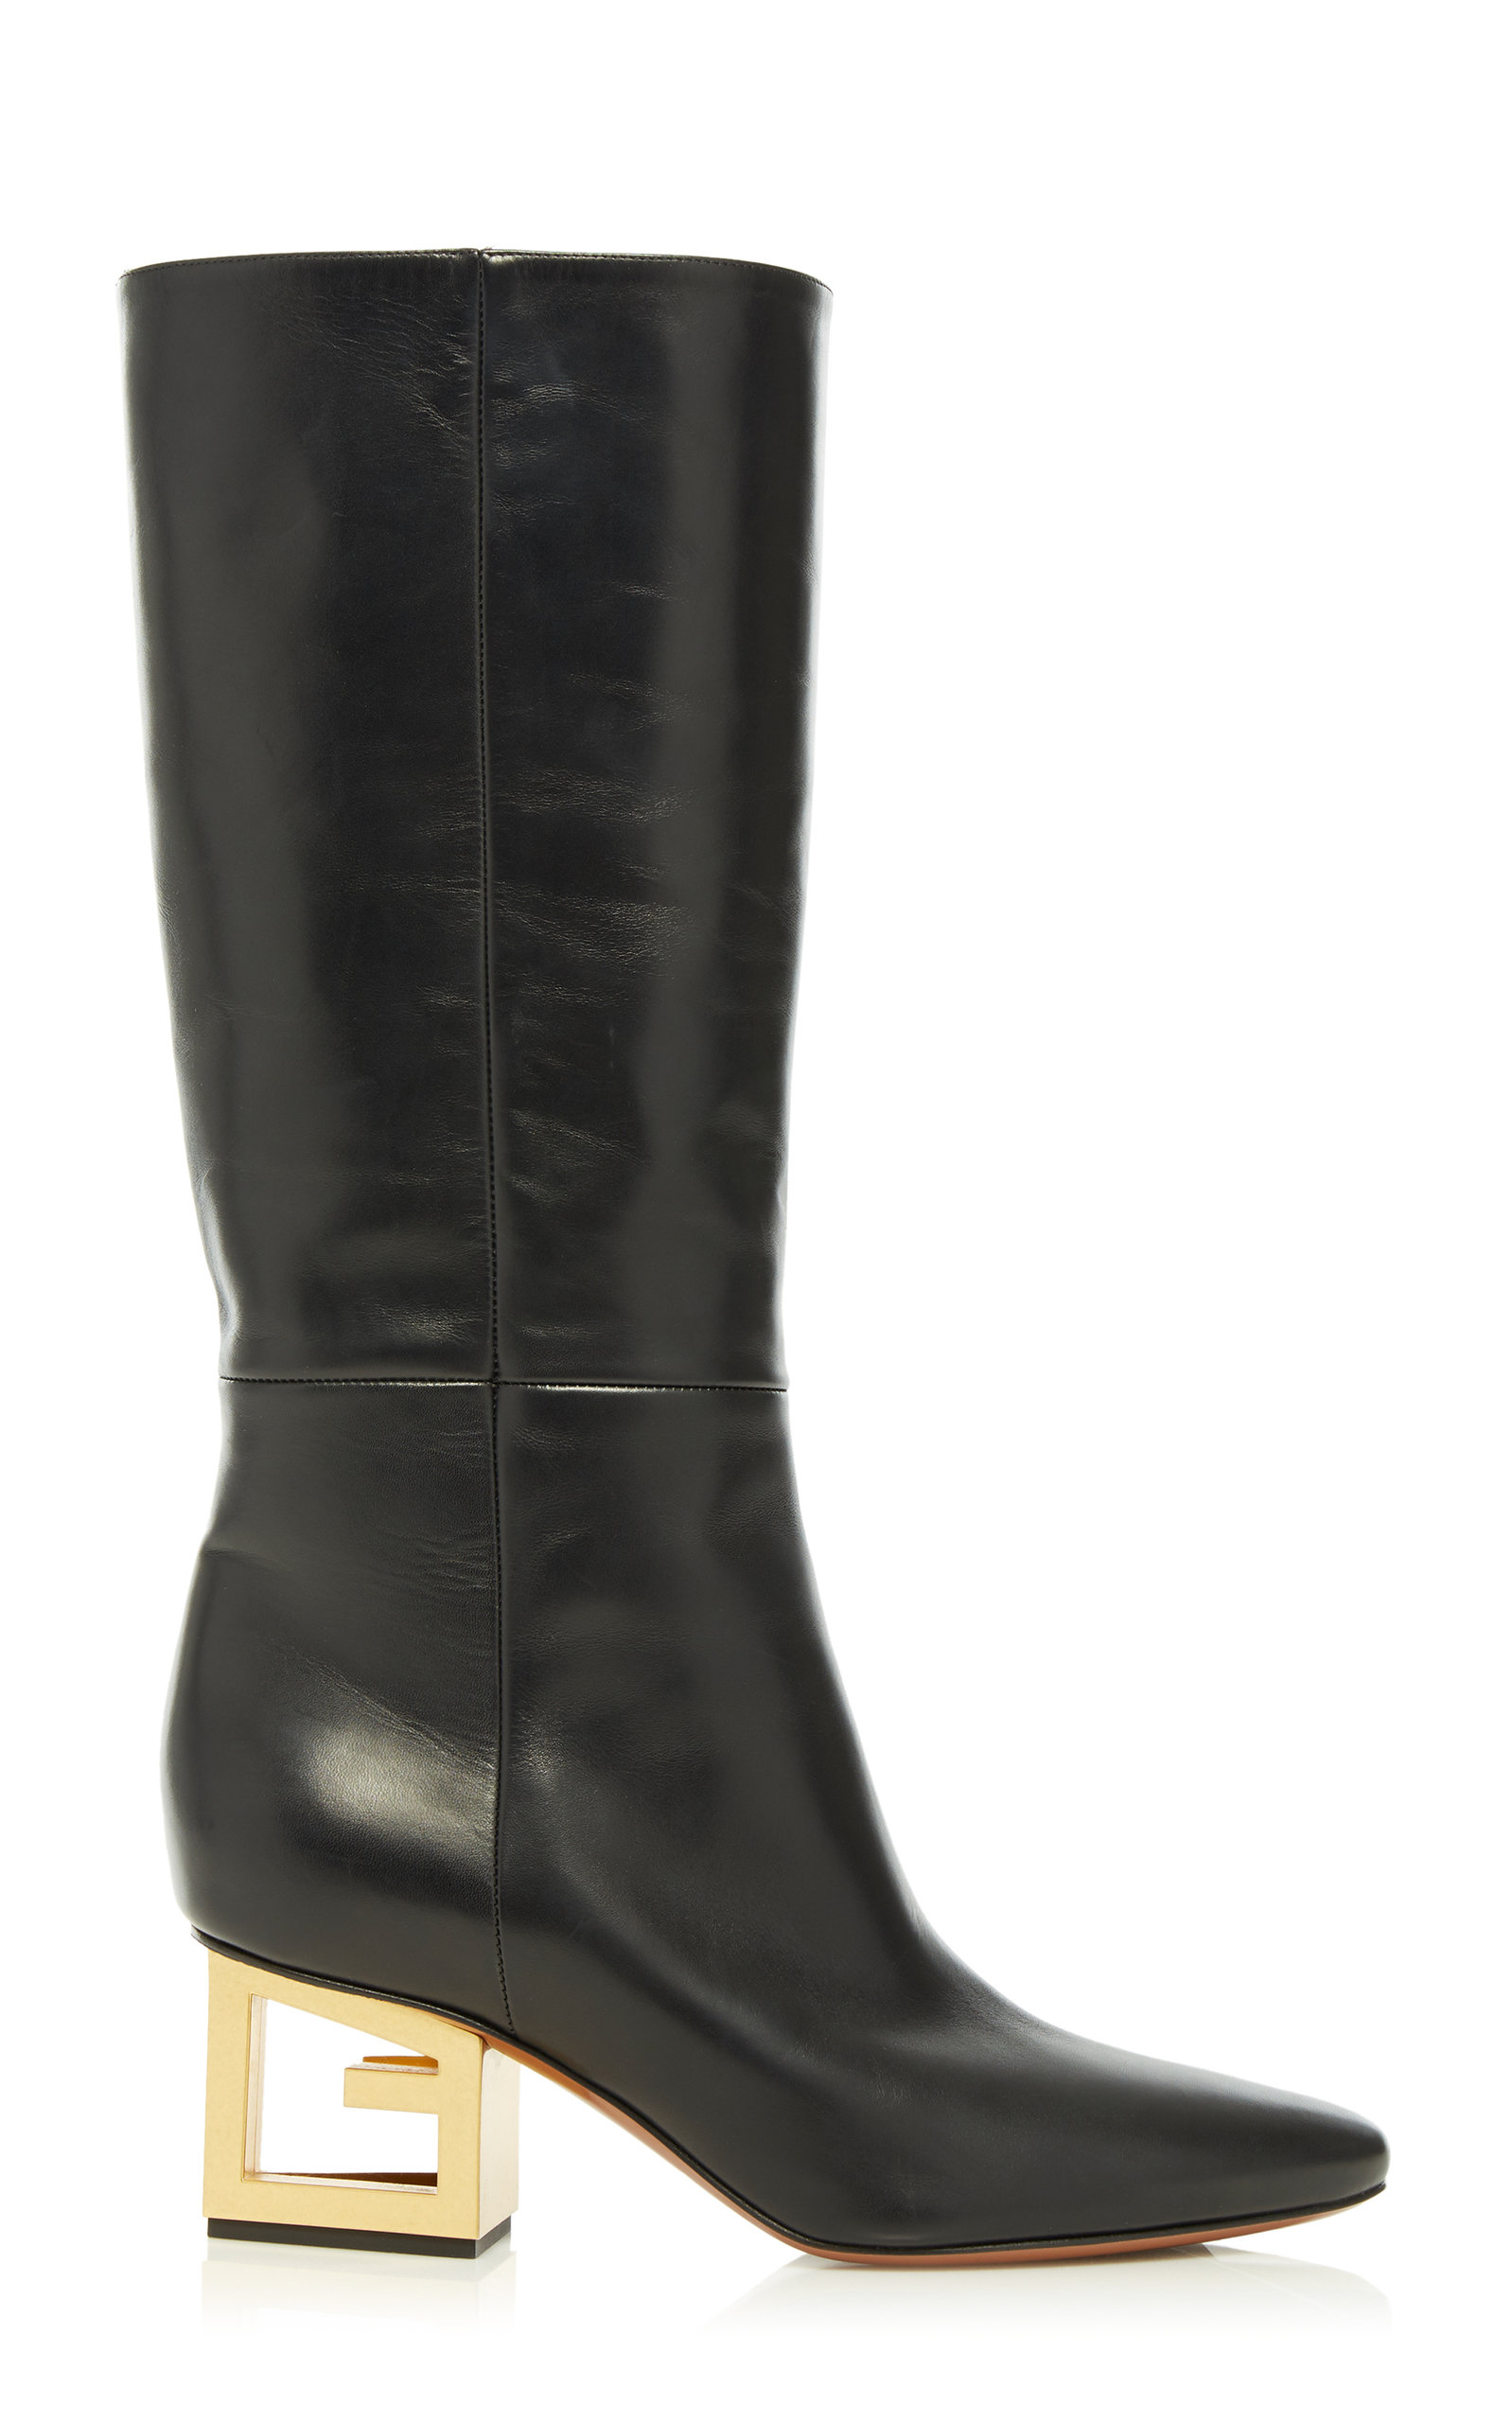 Givenchy Boots Triangle Leather Mid-Calf Boots